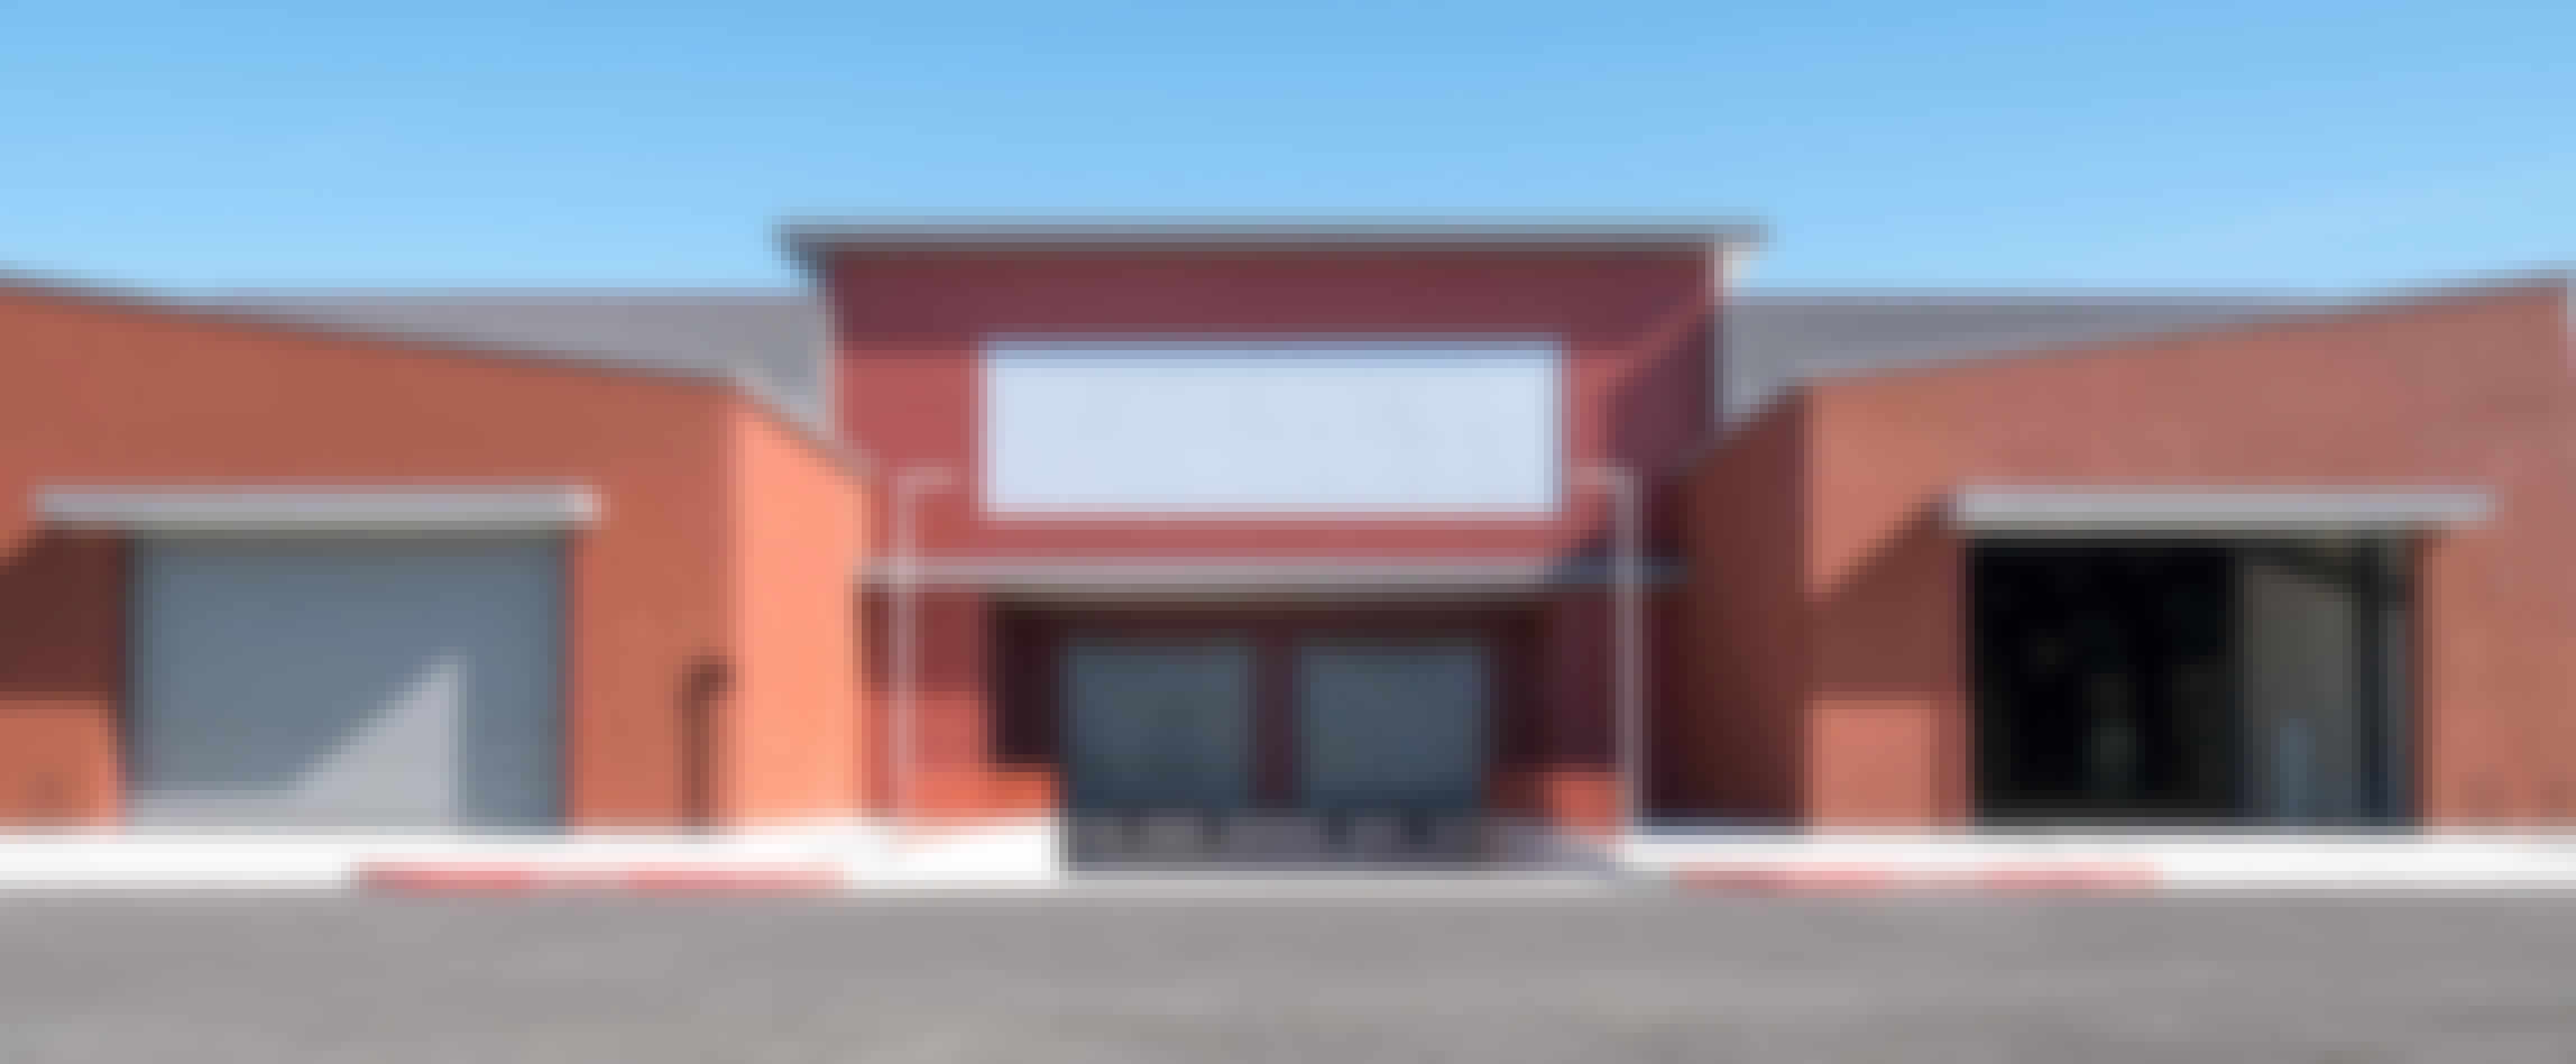 NanaWall-Systems-newly-expanded-Richmond-based-manufacturing-facility